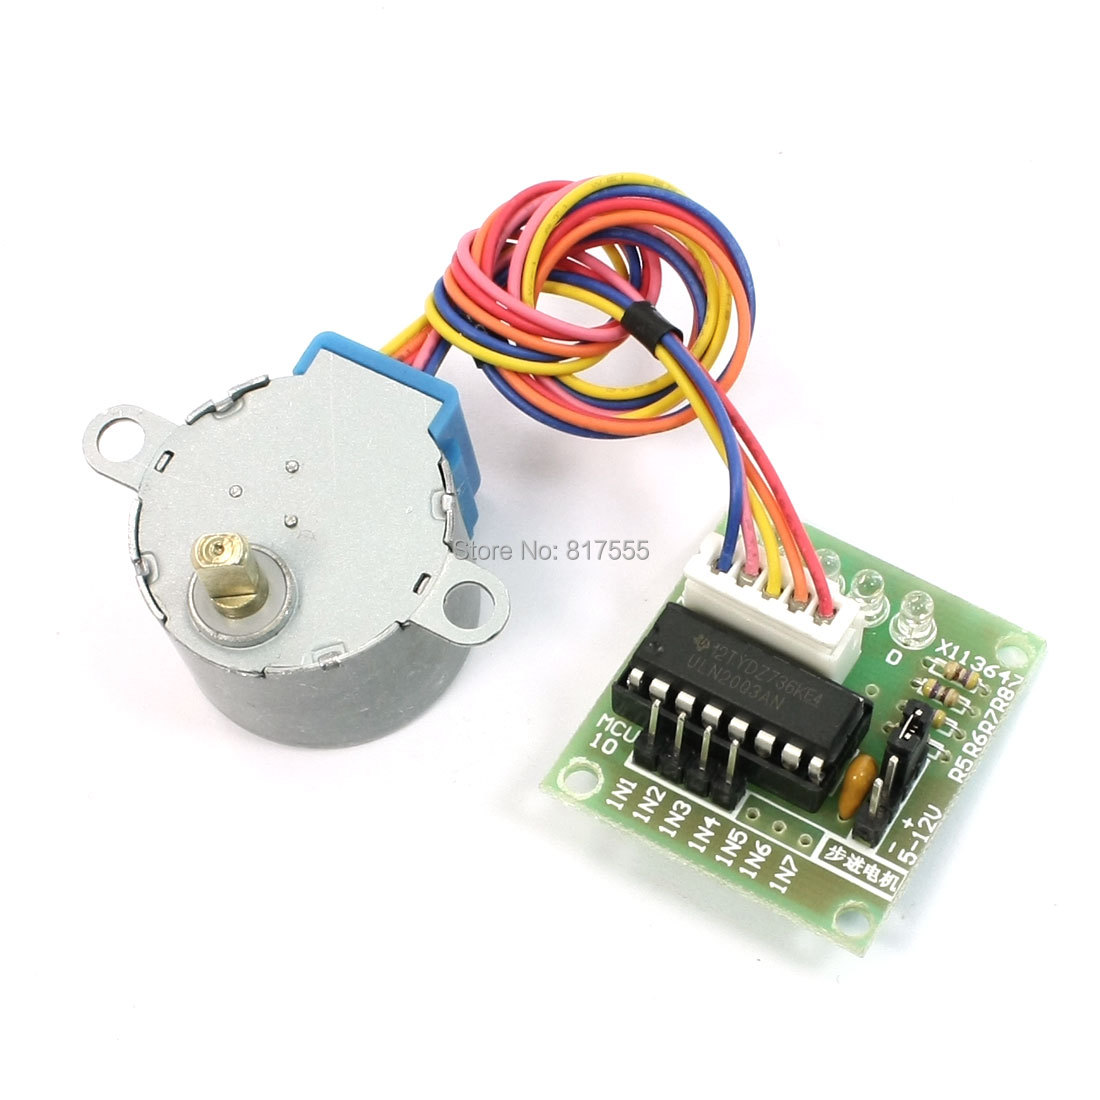 small resolution of mcu diy 4 phase 5 wires stepper motor 5v with ul2003 driver board stepper motor wiring 4 stepper motor wiring 5 wire